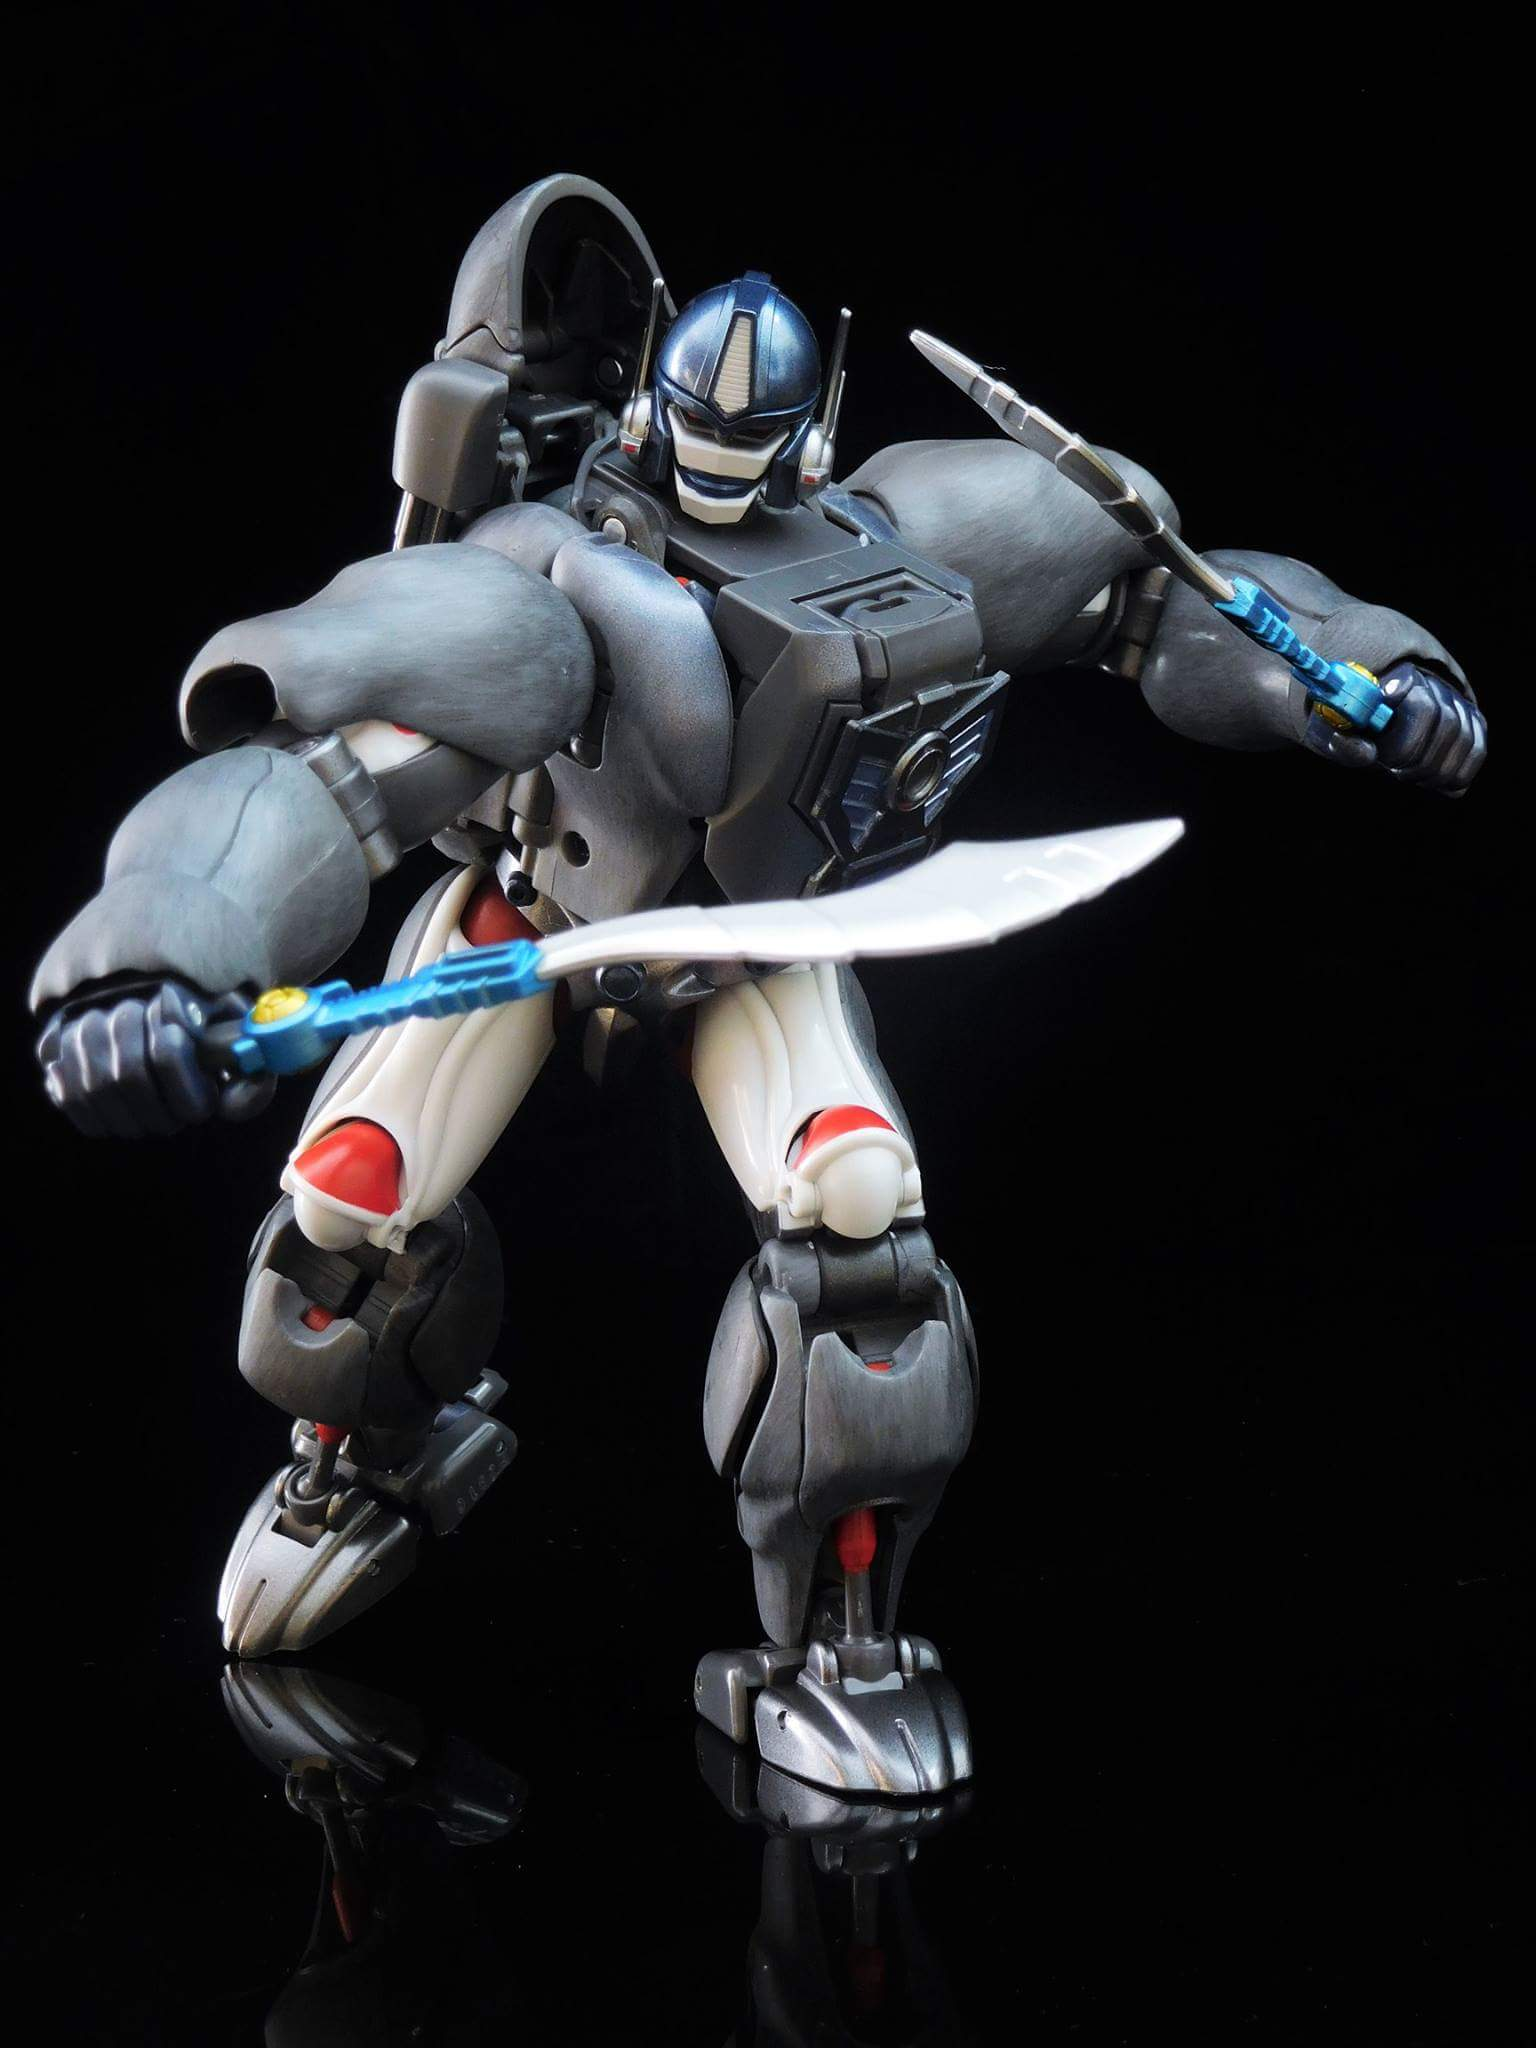 [Masterpiece] MP-32, MP-38 Optimus Primal et MP-38+ Burning Convoy (Beast Wars) - Page 3 7rzWdzuy